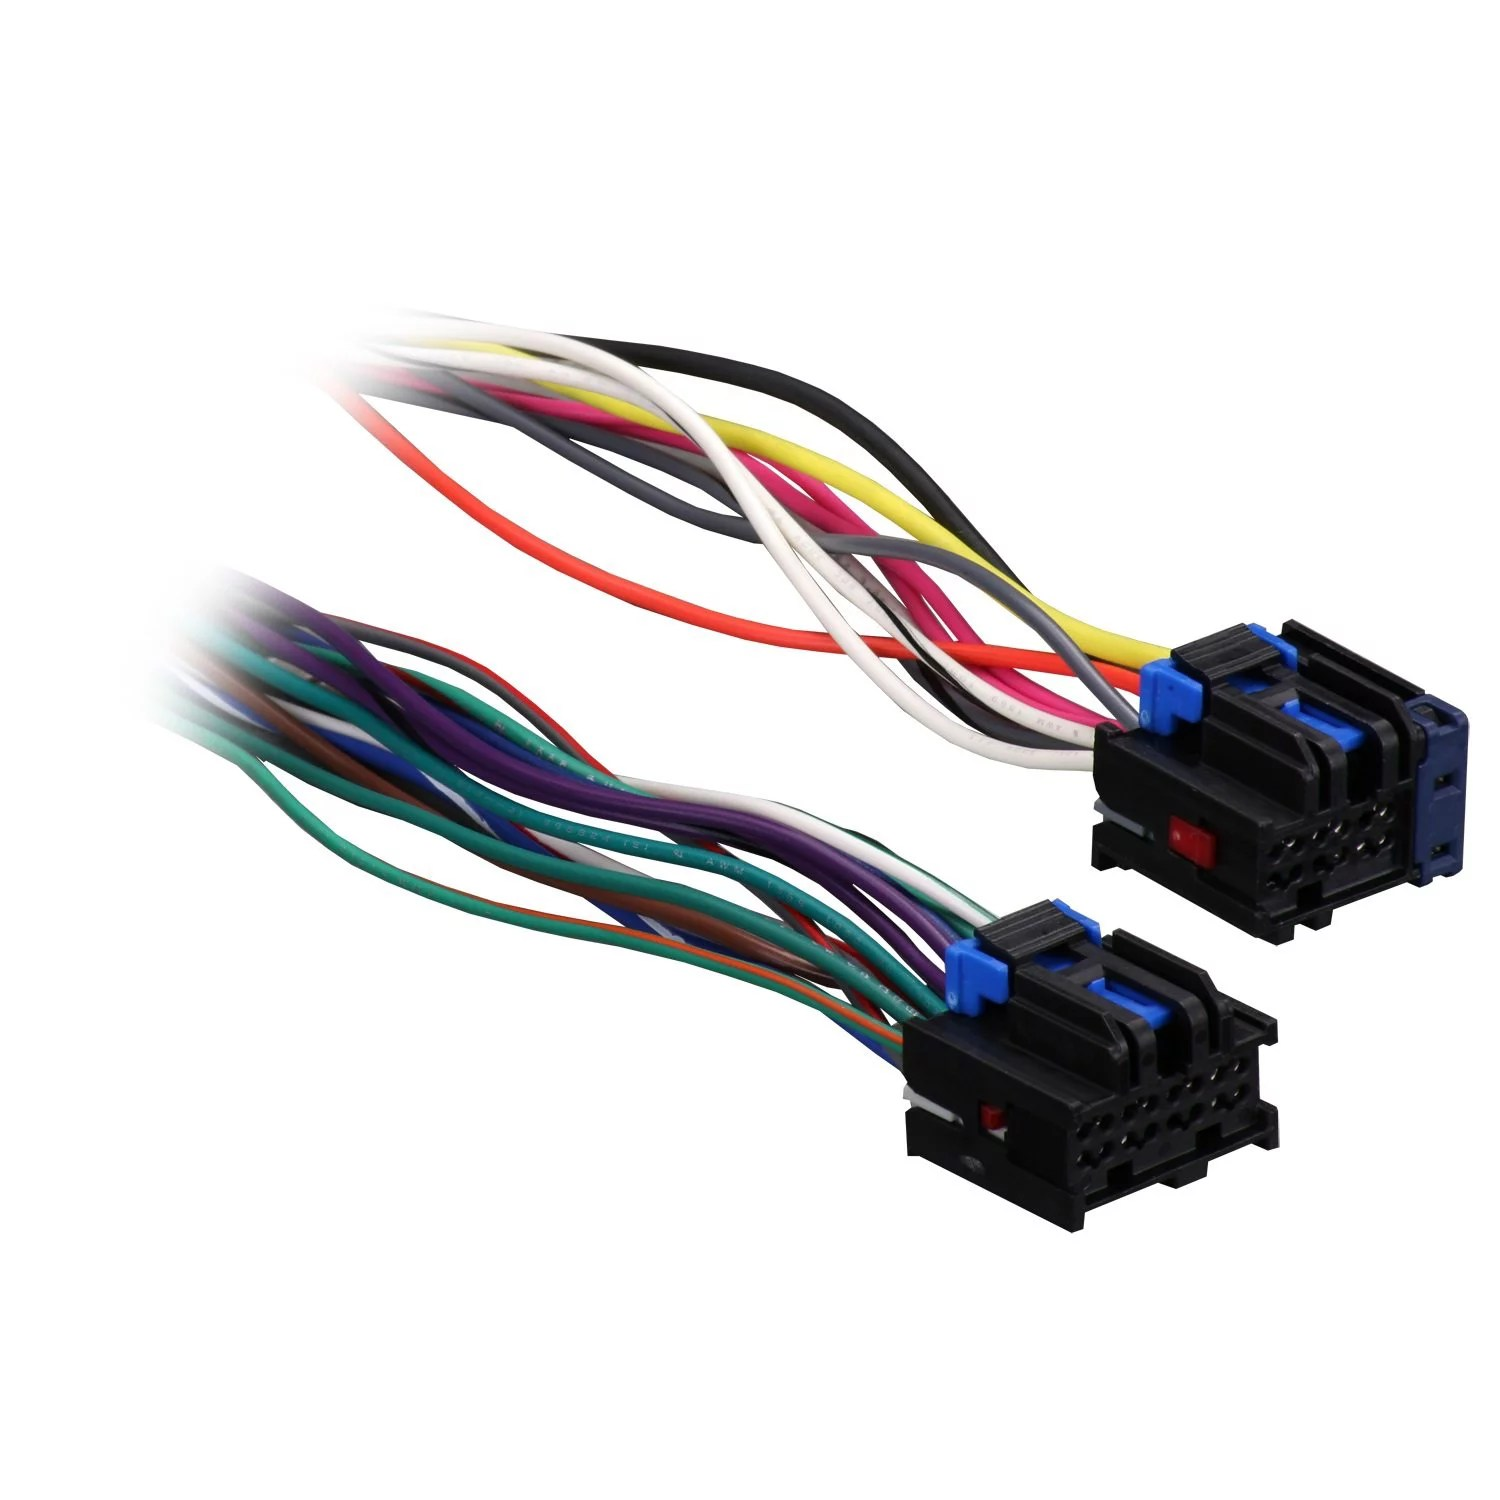 jvc kd r300 wiring harness adapter today wiring diagram update jvc kd r300 wiring diagram jvc kd r300 wiring harness [ 1500 x 1500 Pixel ]